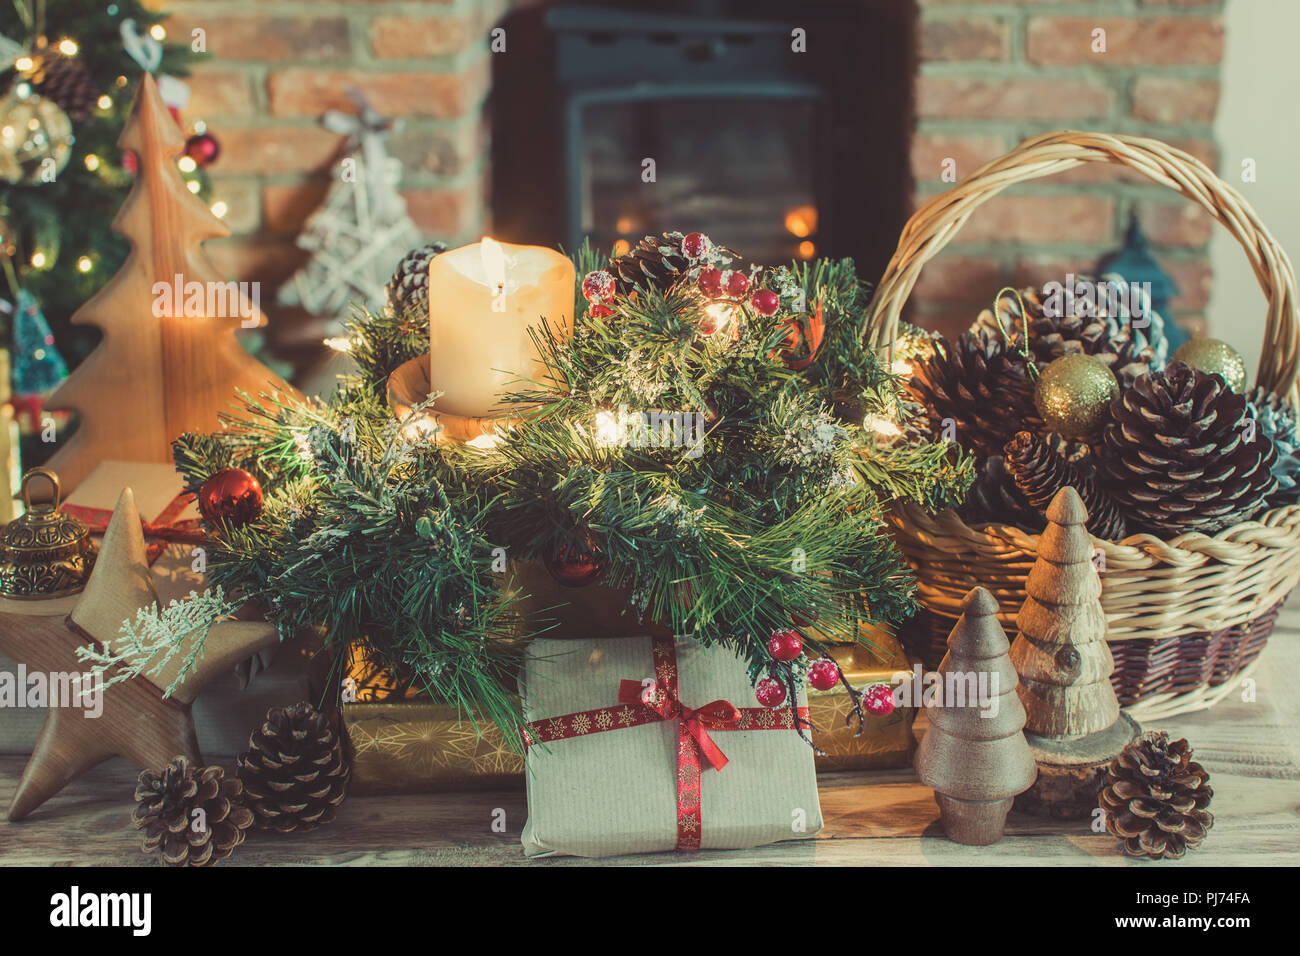 cosy christmas composition presents and decorations on the table in front of the fireplace with woodburner lit up christmas tree with baubles and or